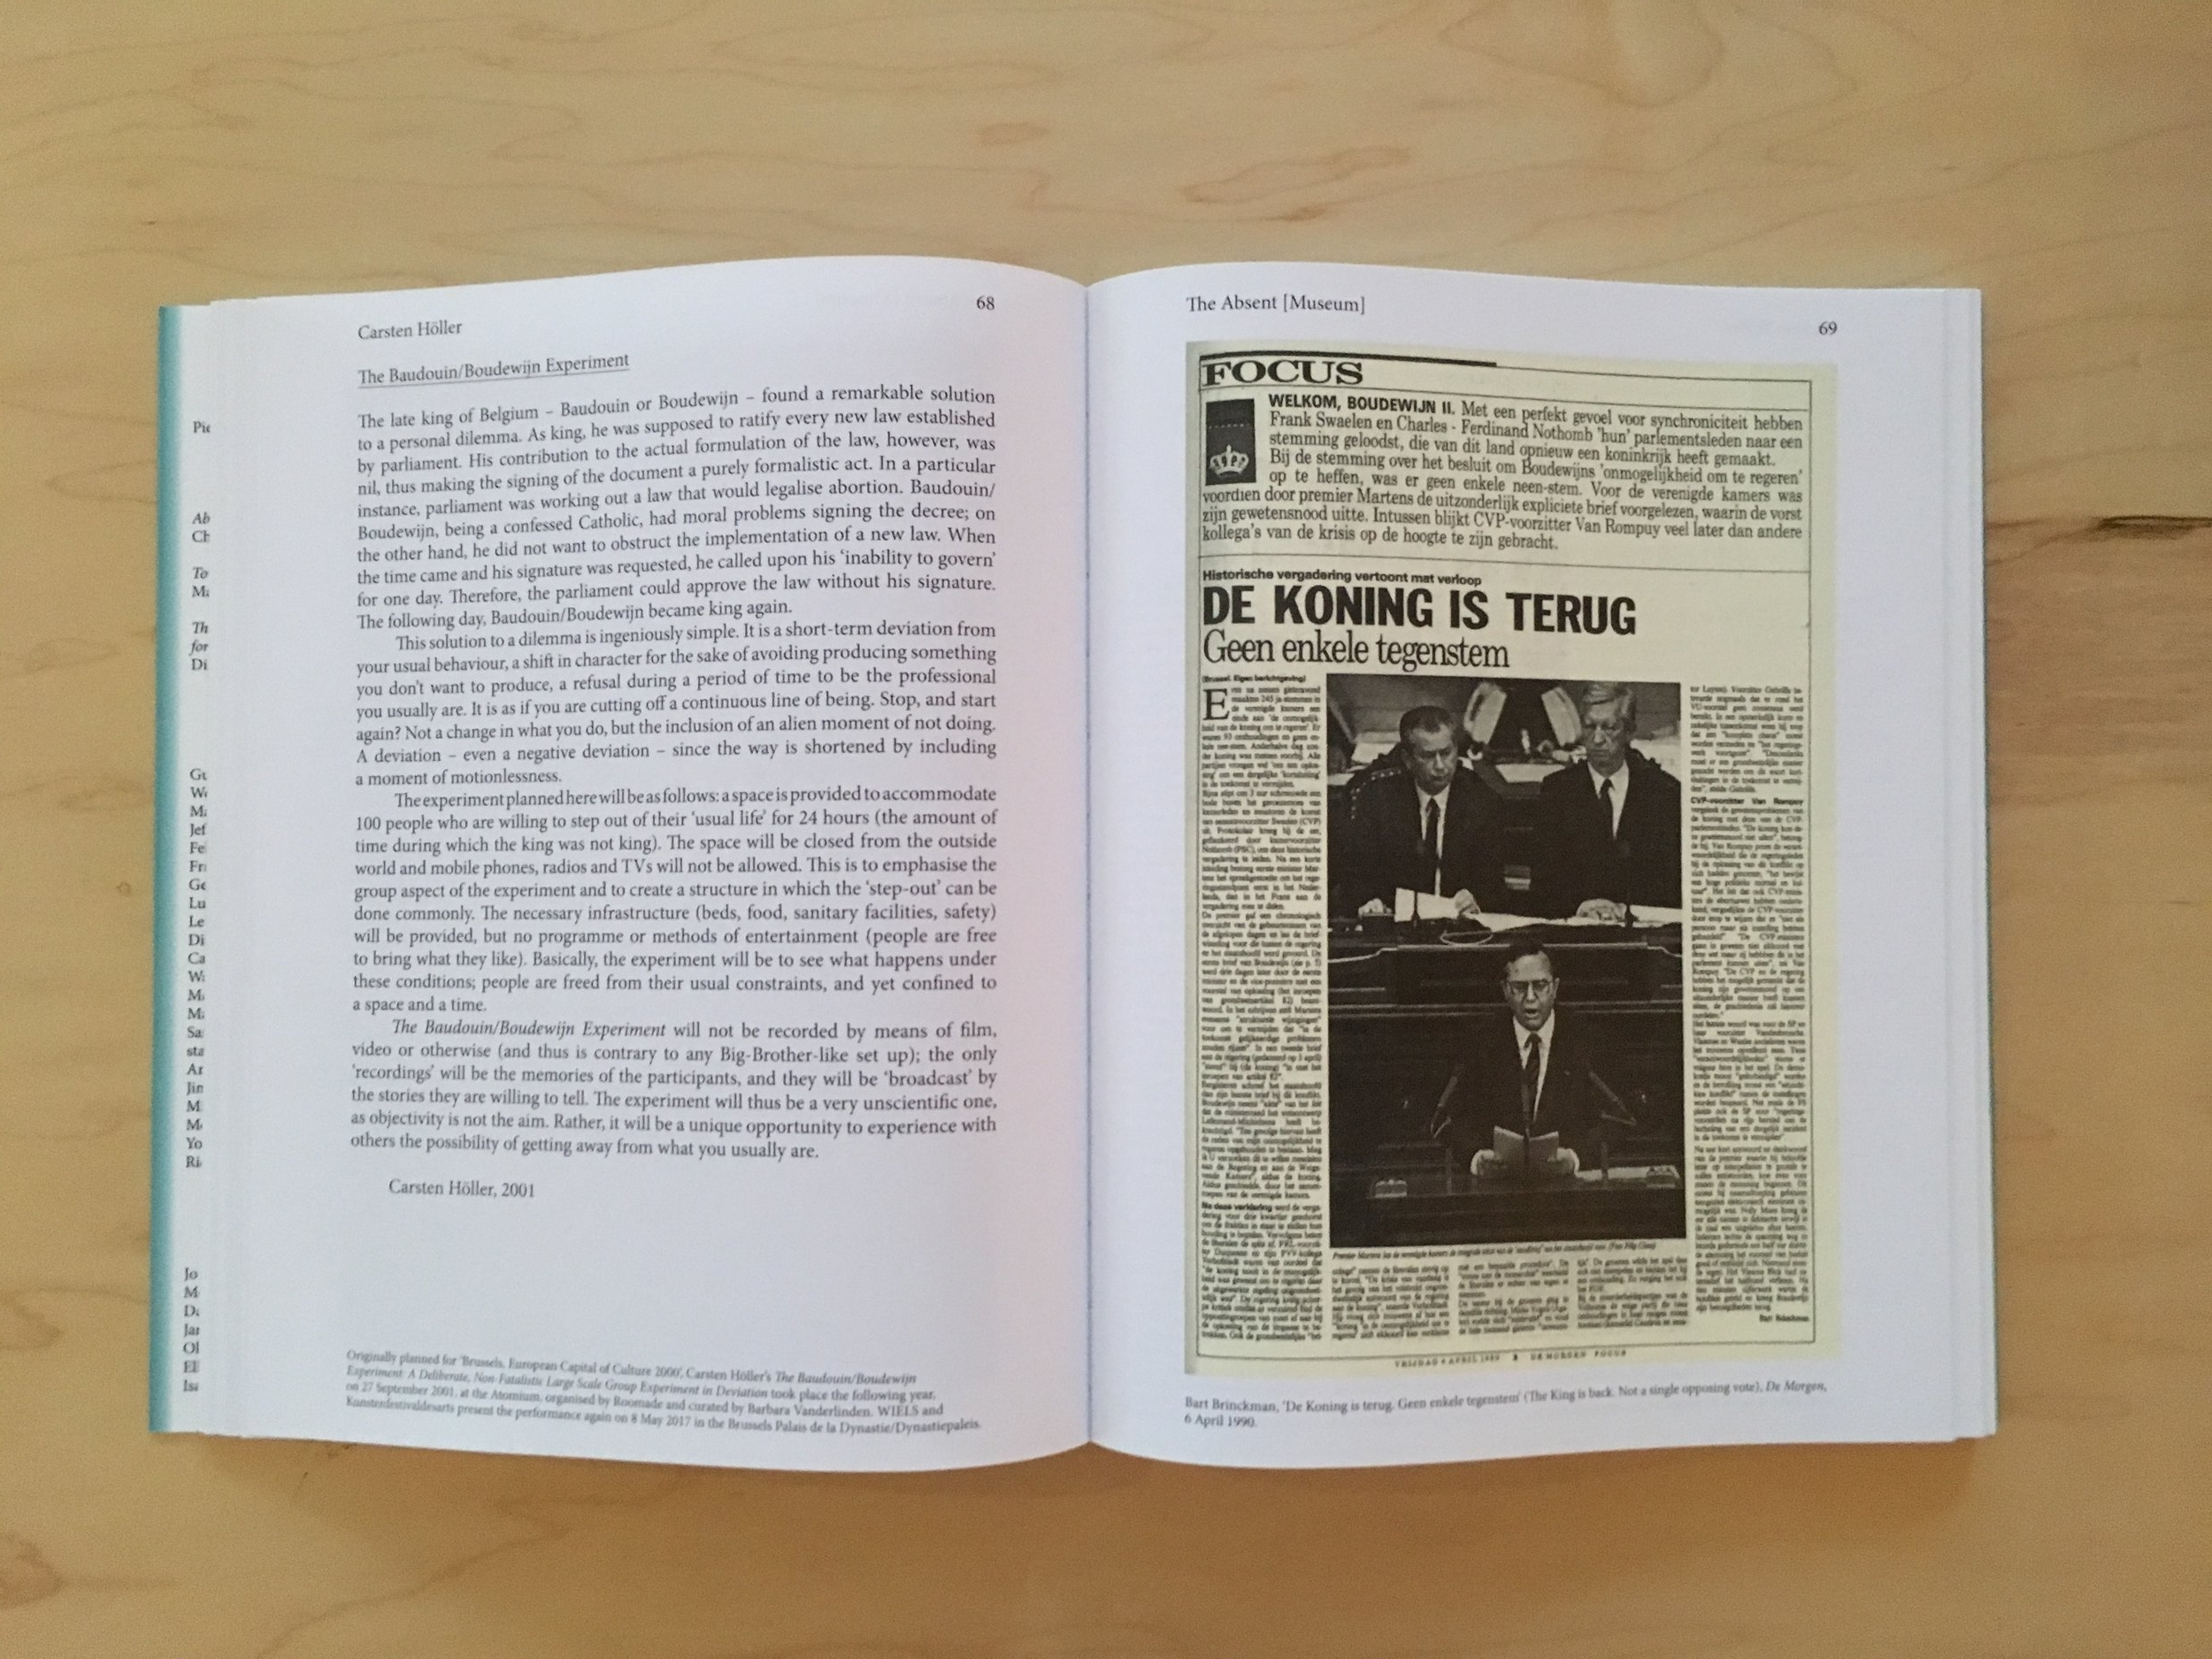 """Carsten Höller, Bart Brinckman, """" The King is back. Not a single opposing vote, """"De Morgen , 6 April 1990 , 2001/2017, in The Absent Museum: Blueprint for a Museum of Contemporary Art for the Capital of Europe .Edited by Dirk Snauwaert (Brussels: WIELS, New Haven: Yale University Press, 2017)."""